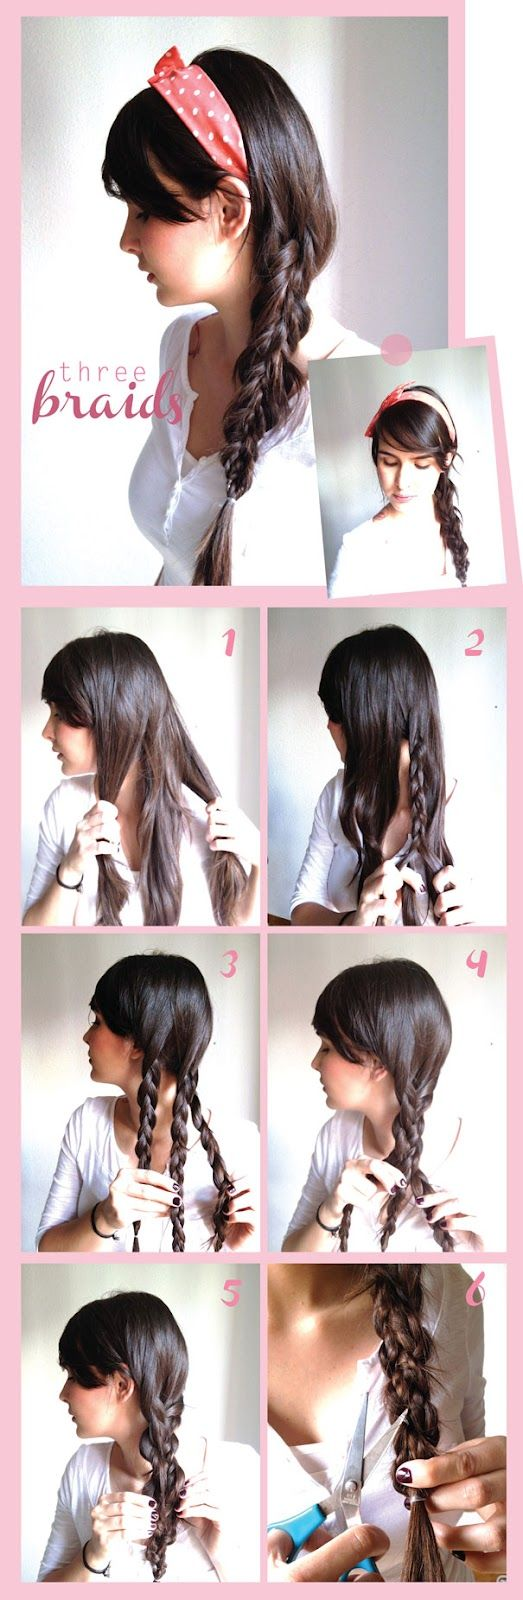 Pin by alyssa renteria on things to wear pinterest third hair